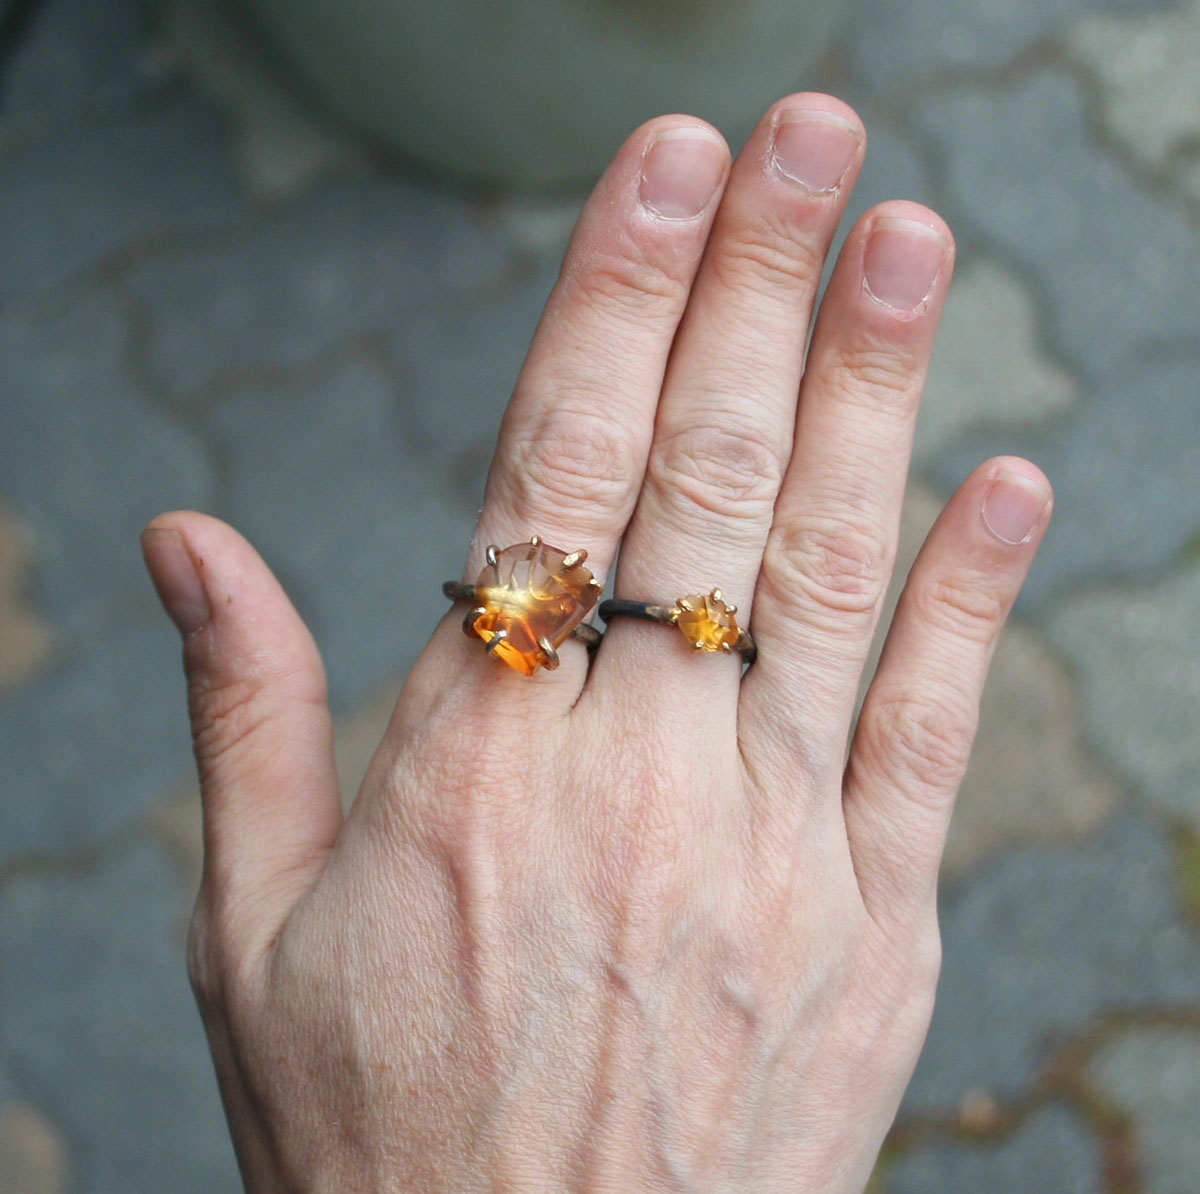 Stone Size - Cut-stone rings are typically sold as either small or large. Small stones used in rings range from 3-6mm in diameter and large rings range from 8-12mm. See the photo above for a good visual of the difference.